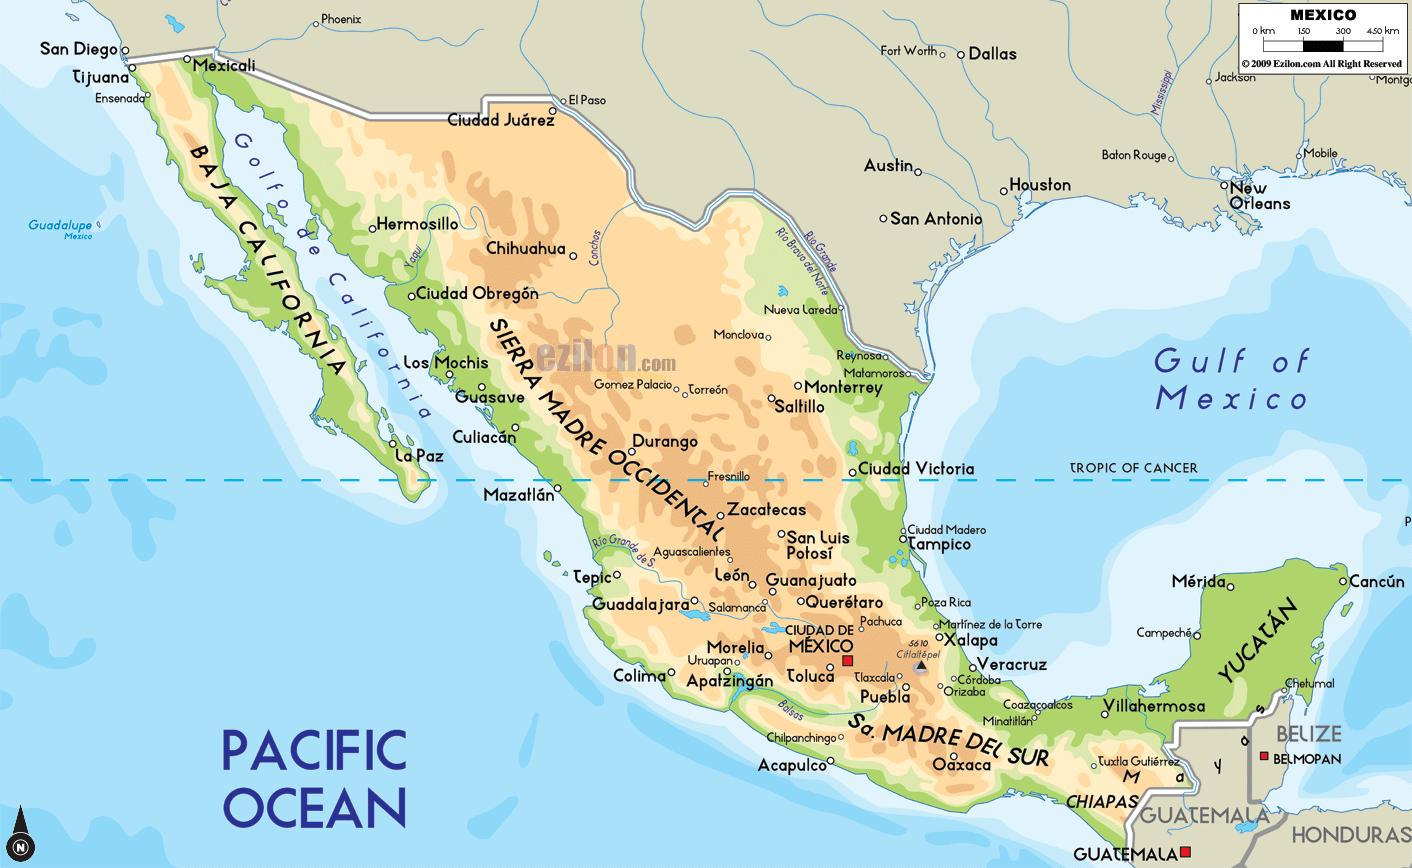 Mexico physical map - Mexico map physical (Central America - Americas)